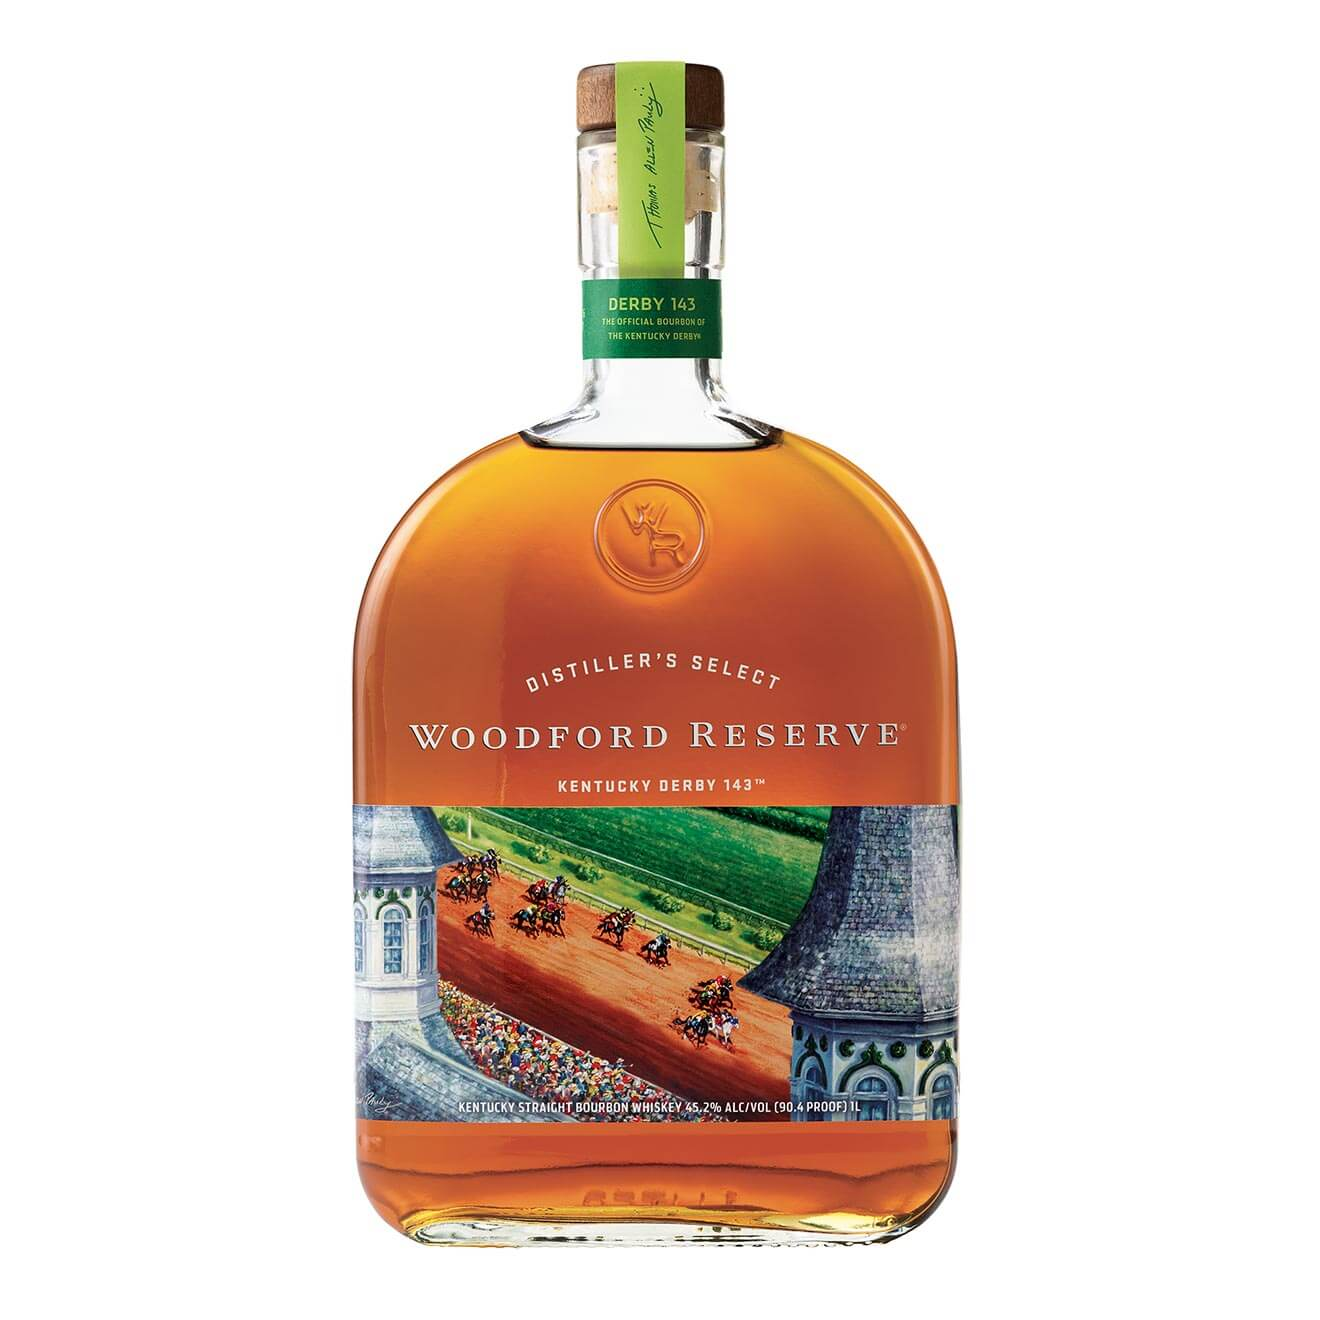 2017 Kentucky Derby Bottle, Woodford Reserve